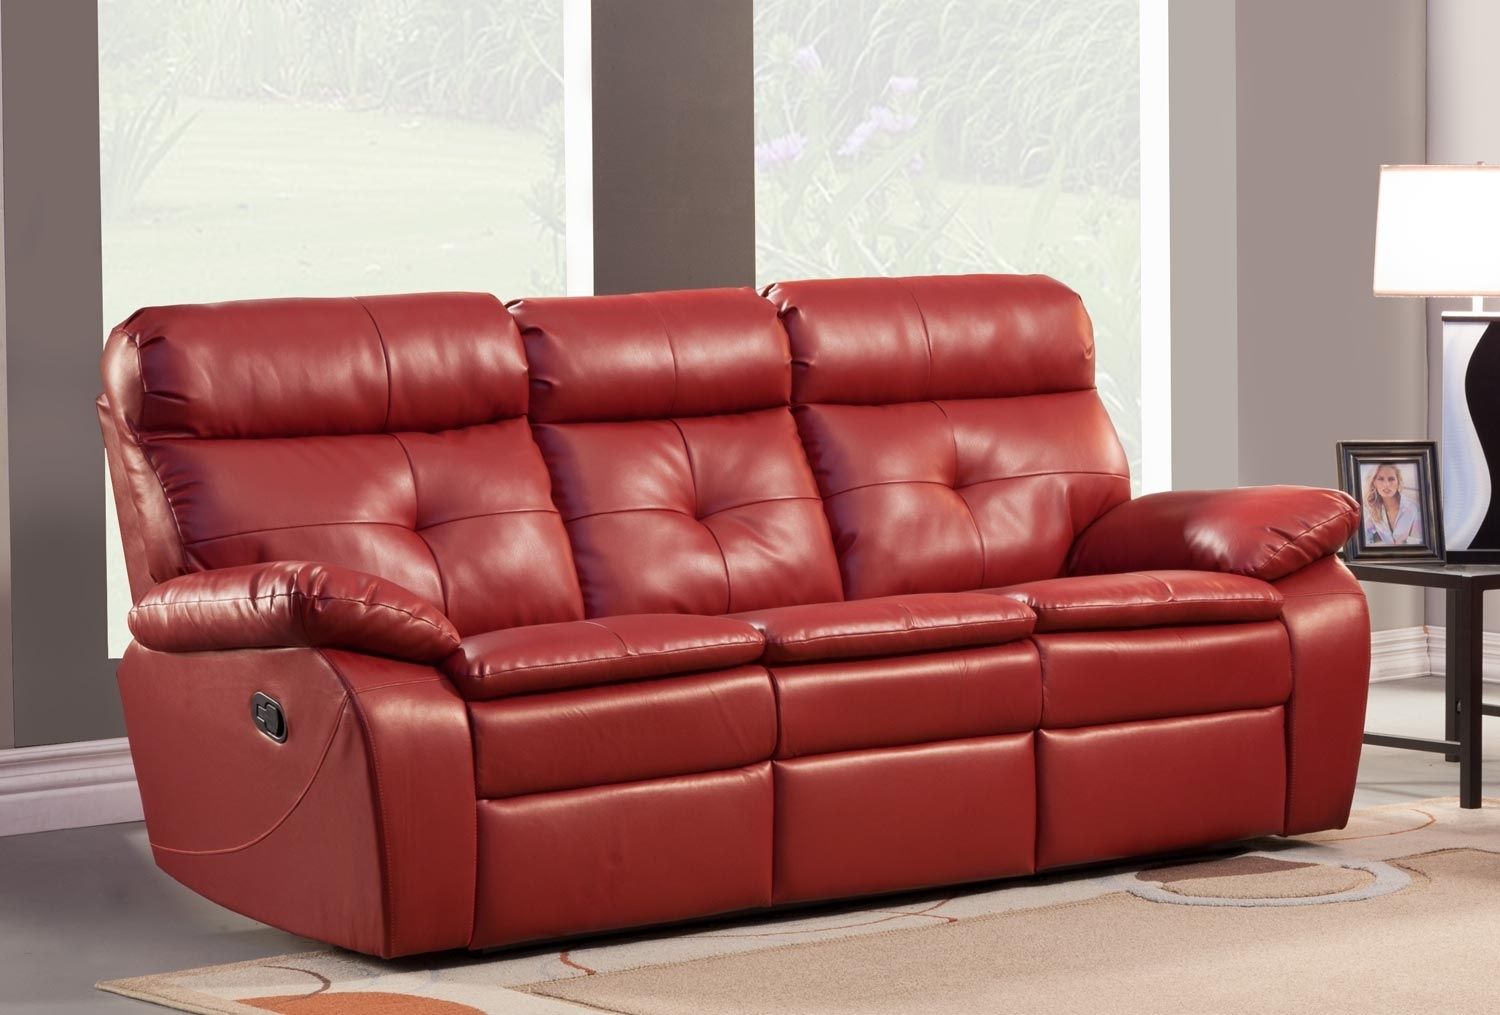 Good Red Leather Reclining Sofa And Loveseat 39 On Sofas And Couches In Red Leather Reclining Sofas And Loveseats (View 2 of 10)